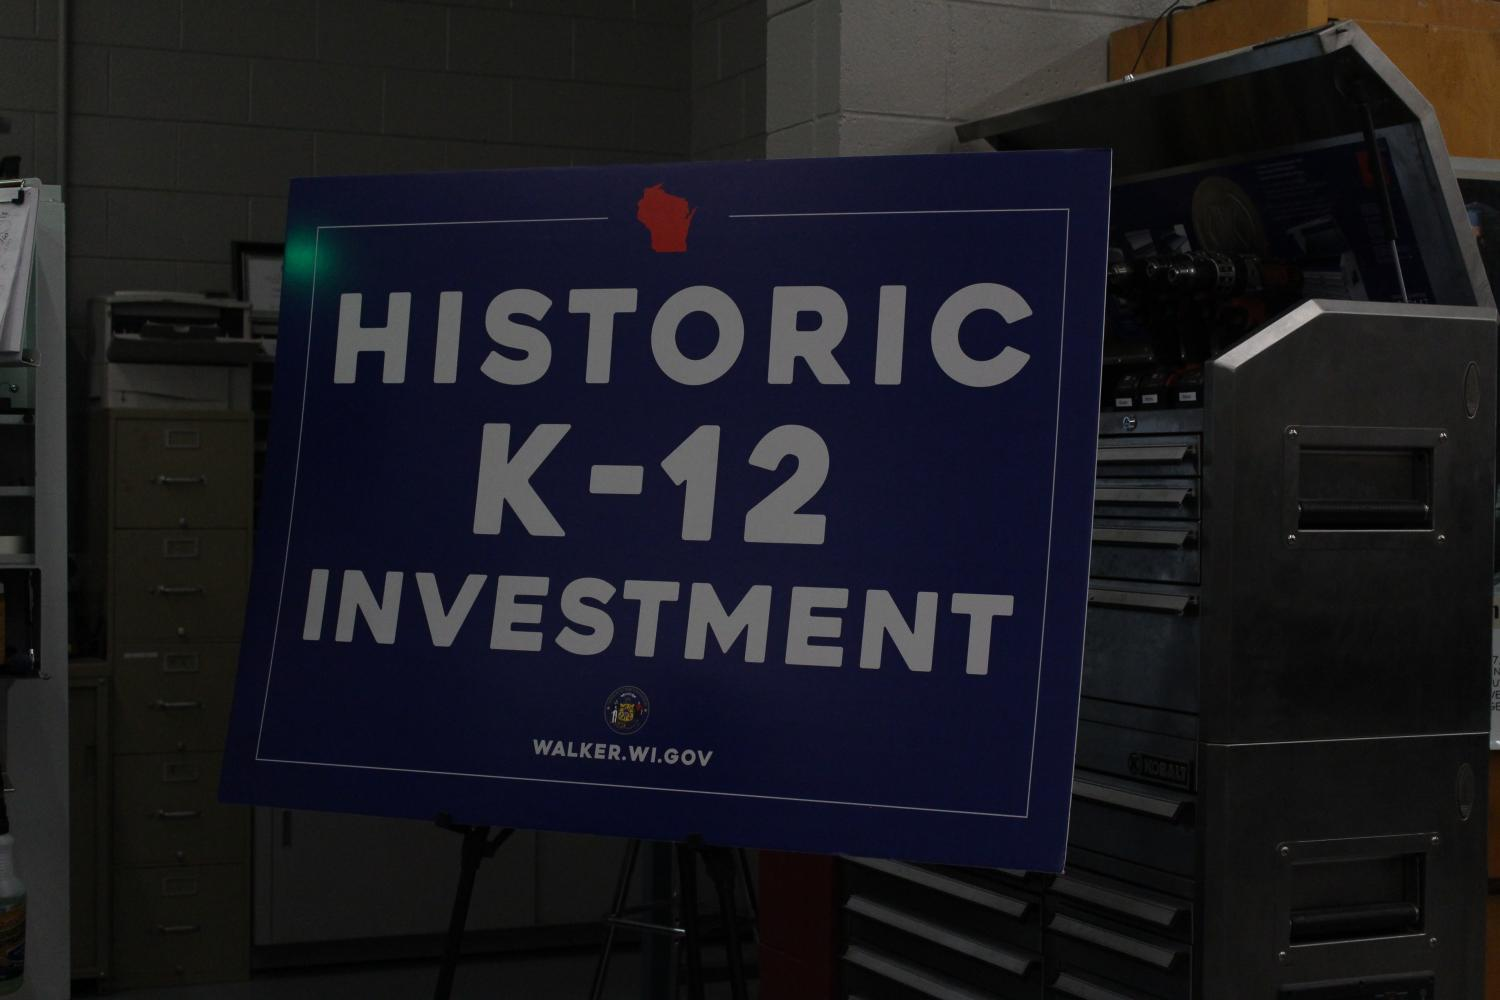 Govenor Walker presented the Historic K-12 Investment at Sheboygan South High School Friday afternoon.